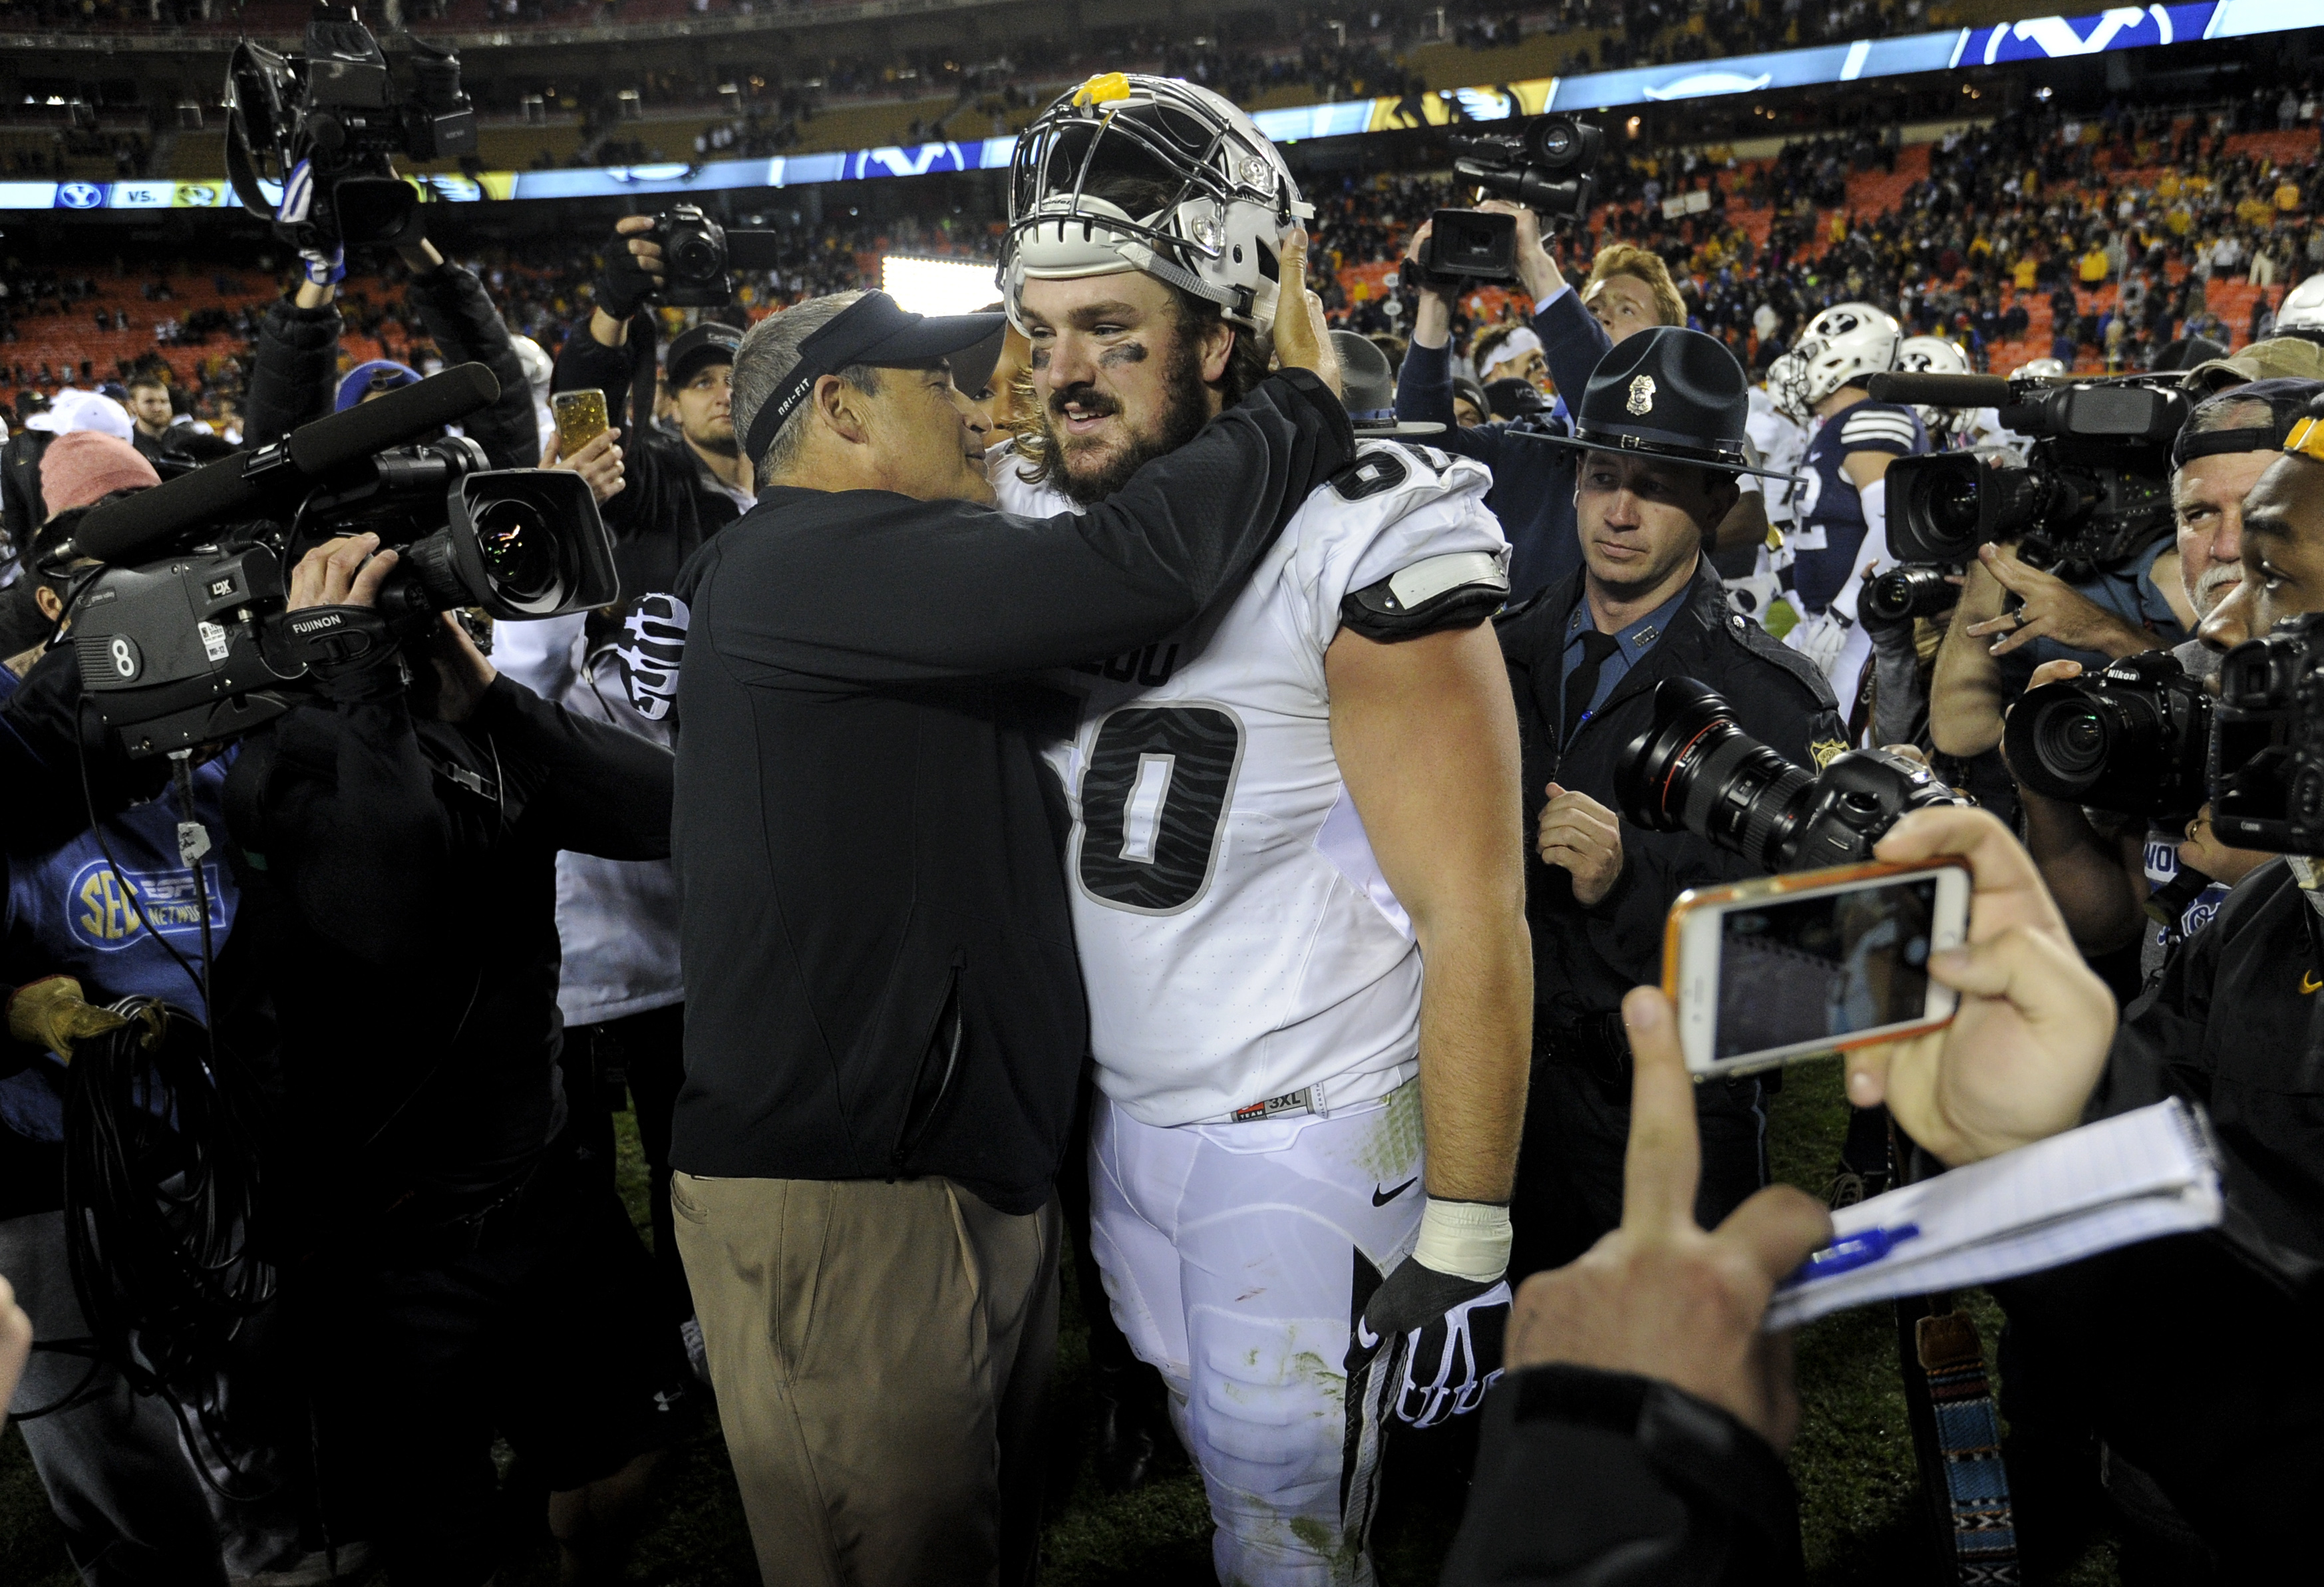 Head coach Gary Pinkel of the Missouri Tigers hugs Connor McGovern #60 after a 20-16 win over the Brigham Young Cougars at Arrowhead Stadium on November 14, 2015 in Kansas City, Missouri. (Photo by Ed Zurga/Getty Images)